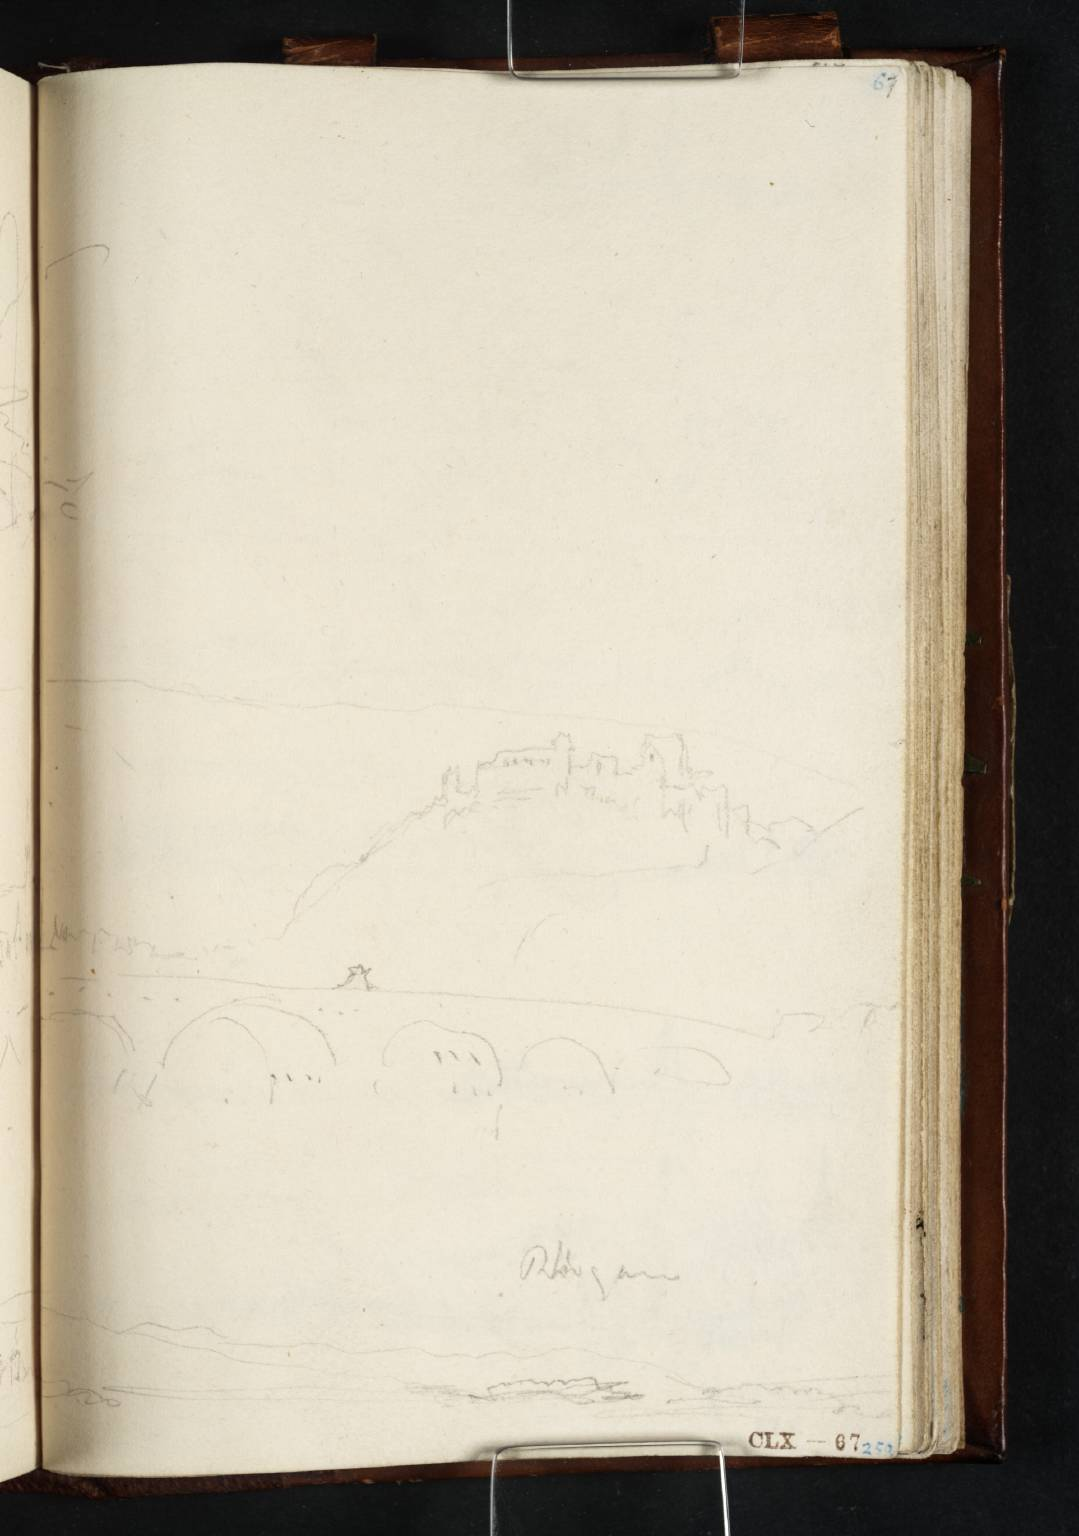 Joseph Mallord William Turner; (1) The Drusus Bridge over the Nahe, Looking down the Nahe to Bingen at its Confluence with the Rhine; on the Hillside, Burg Ehrenfels and Burg Klopp; (2) View from Bingen across the Rhine to Rüdesheim, the Johannisberg and the Rheingau 1817